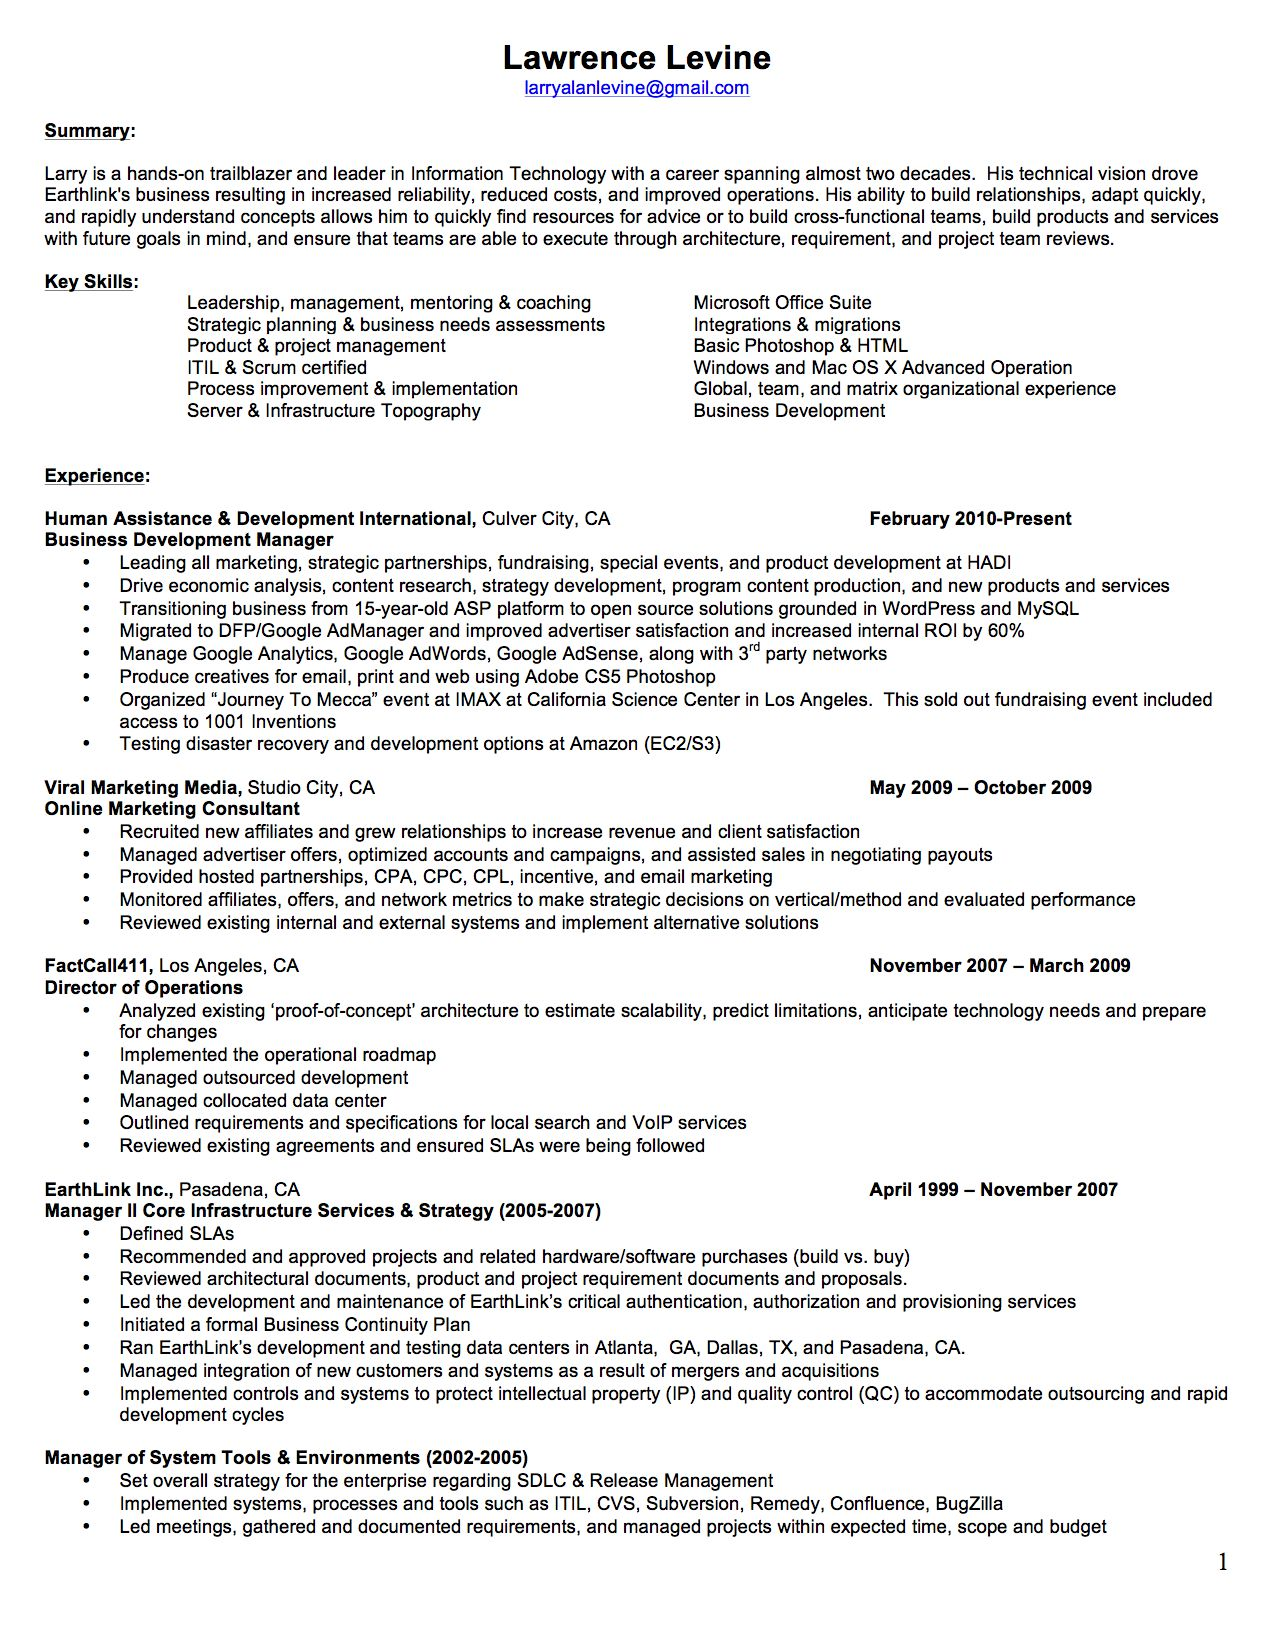 Implementation Project Manager Resume Leadership Management Mentoring And Coaching Strategic